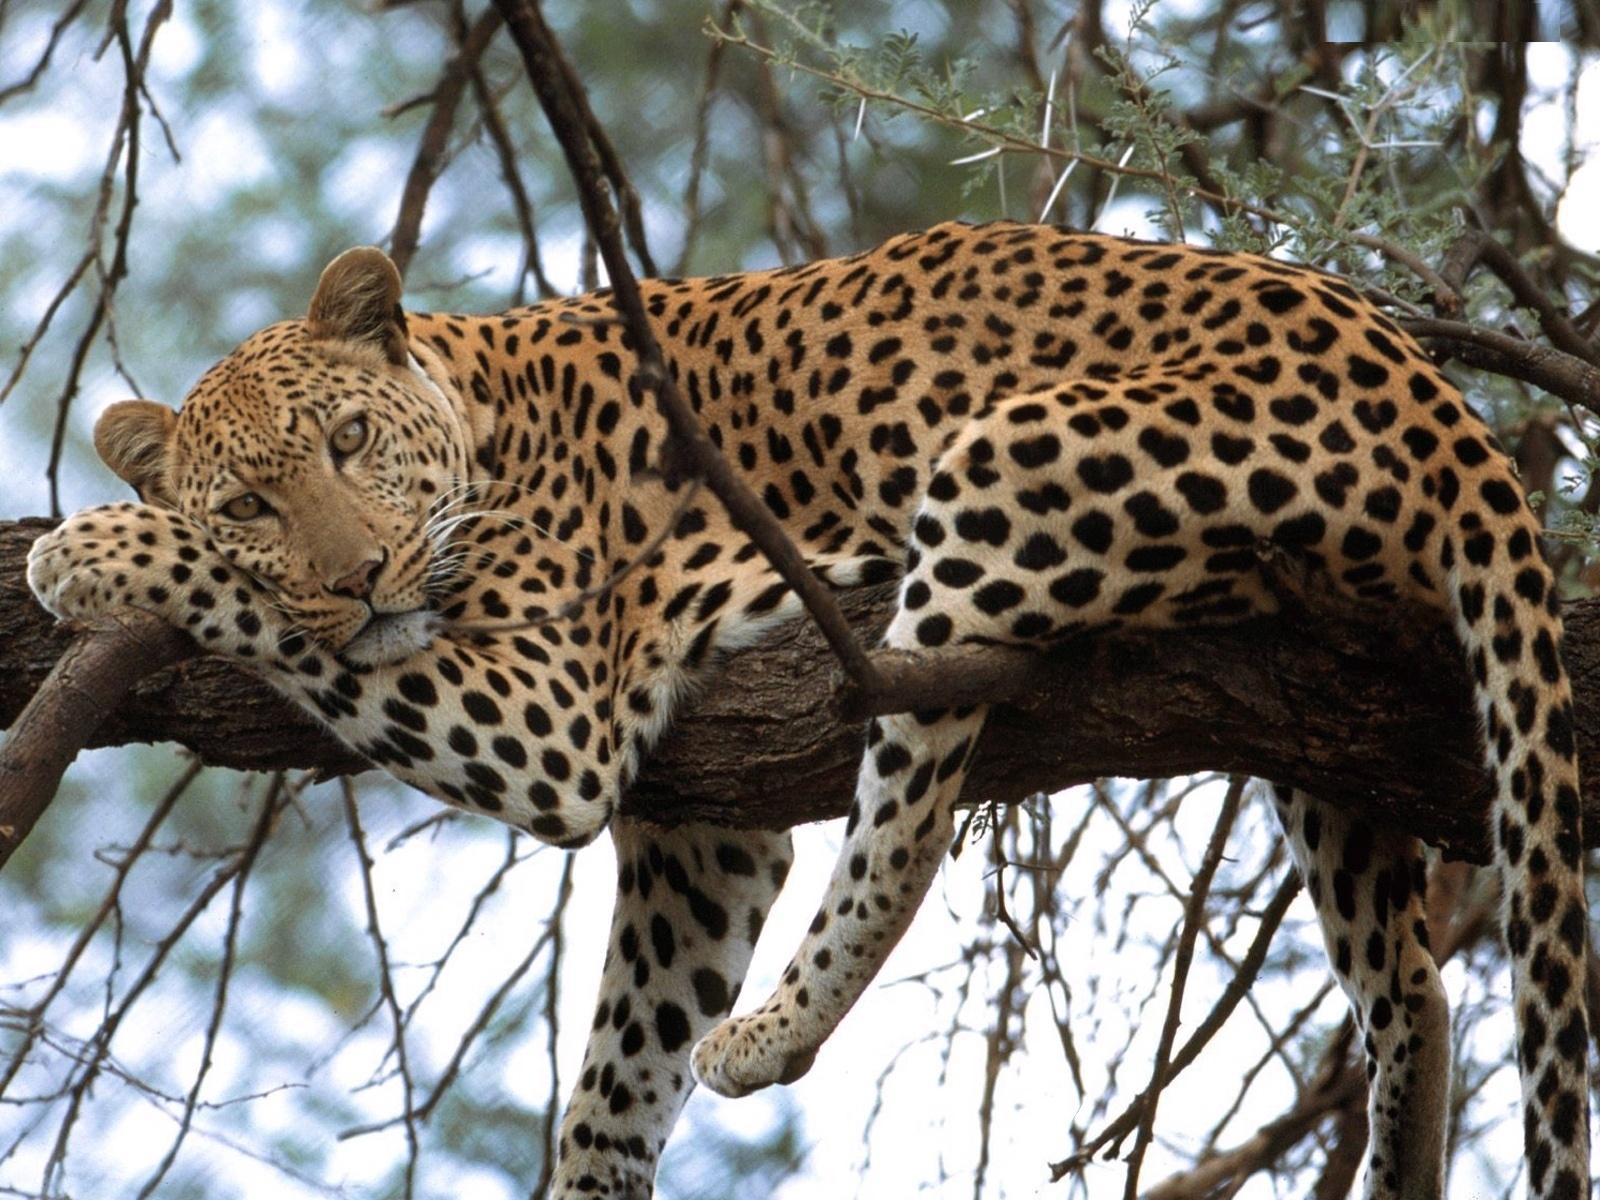 Leopard resting on a tree branch